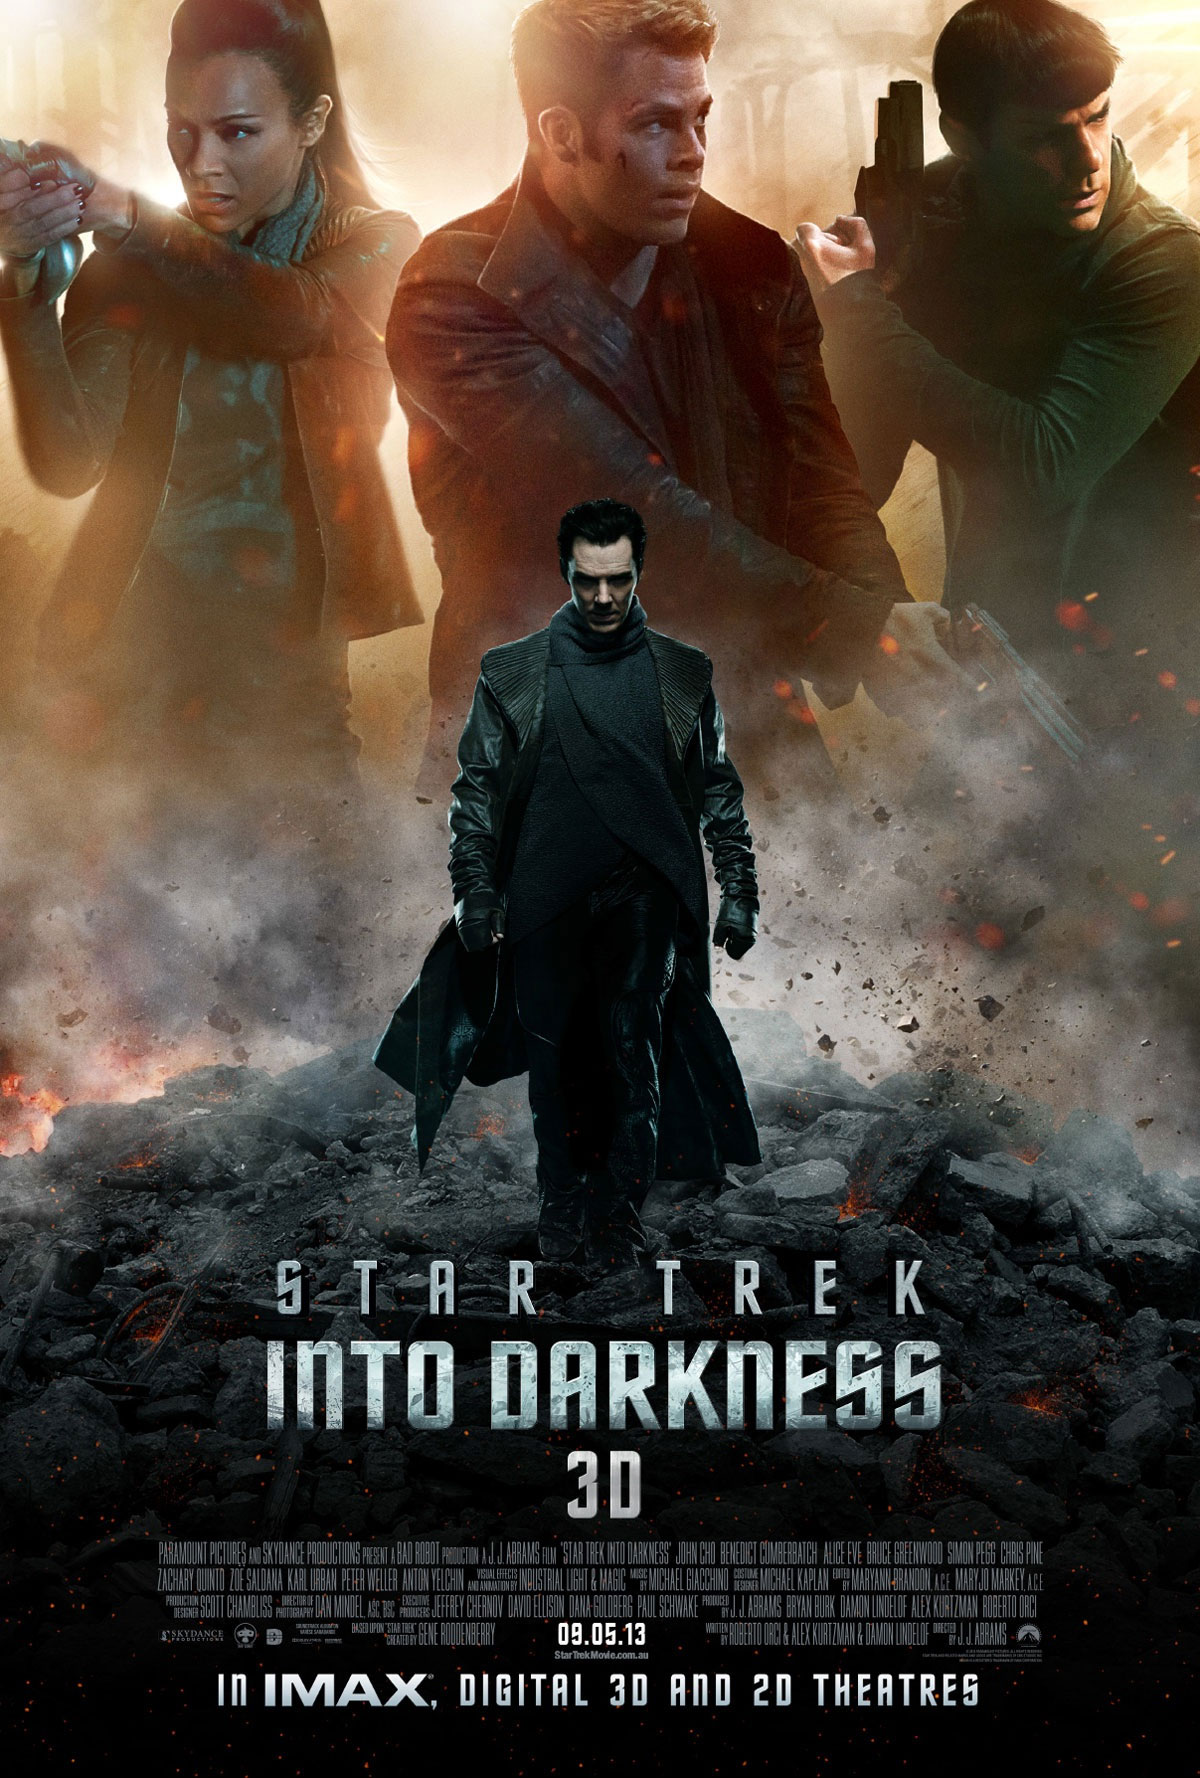 Star Trek Into Darkness International Trailer Sees Cumberbatch Attack